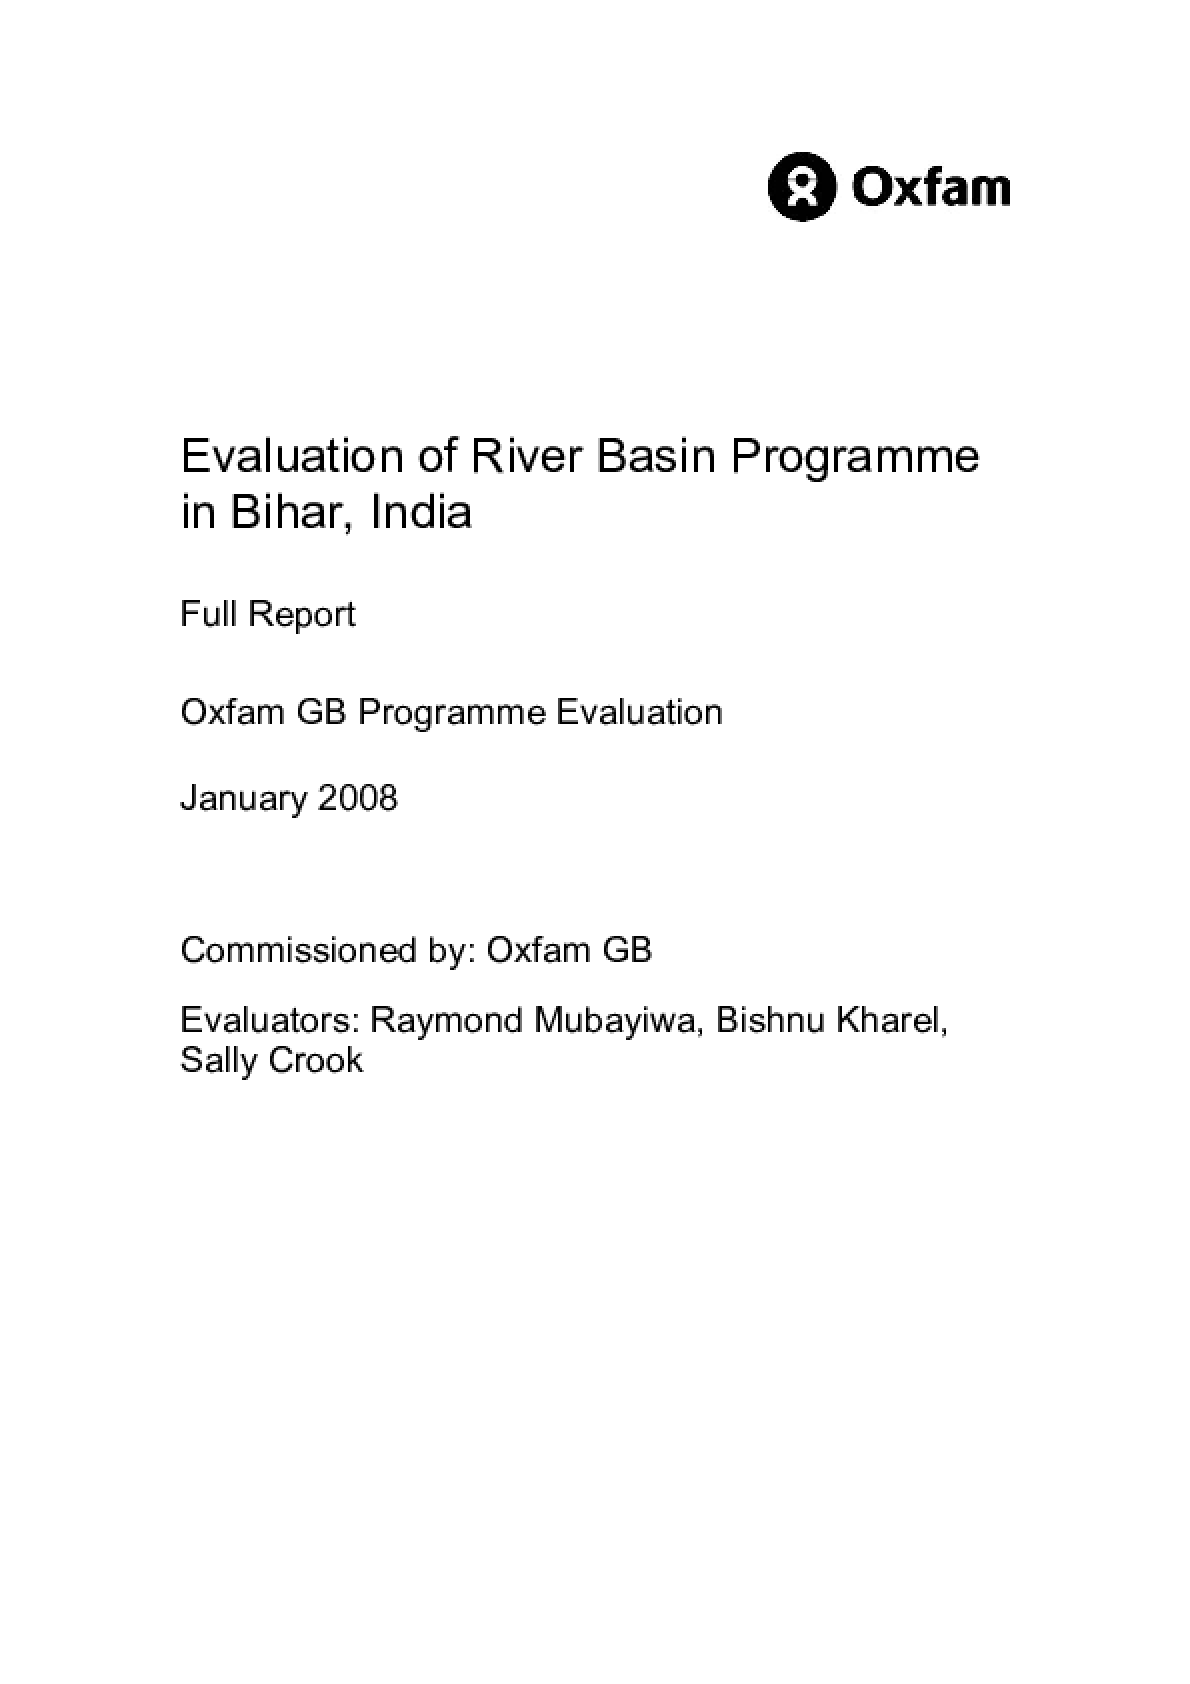 Evaluation of River Basin Programme in Bihar, India